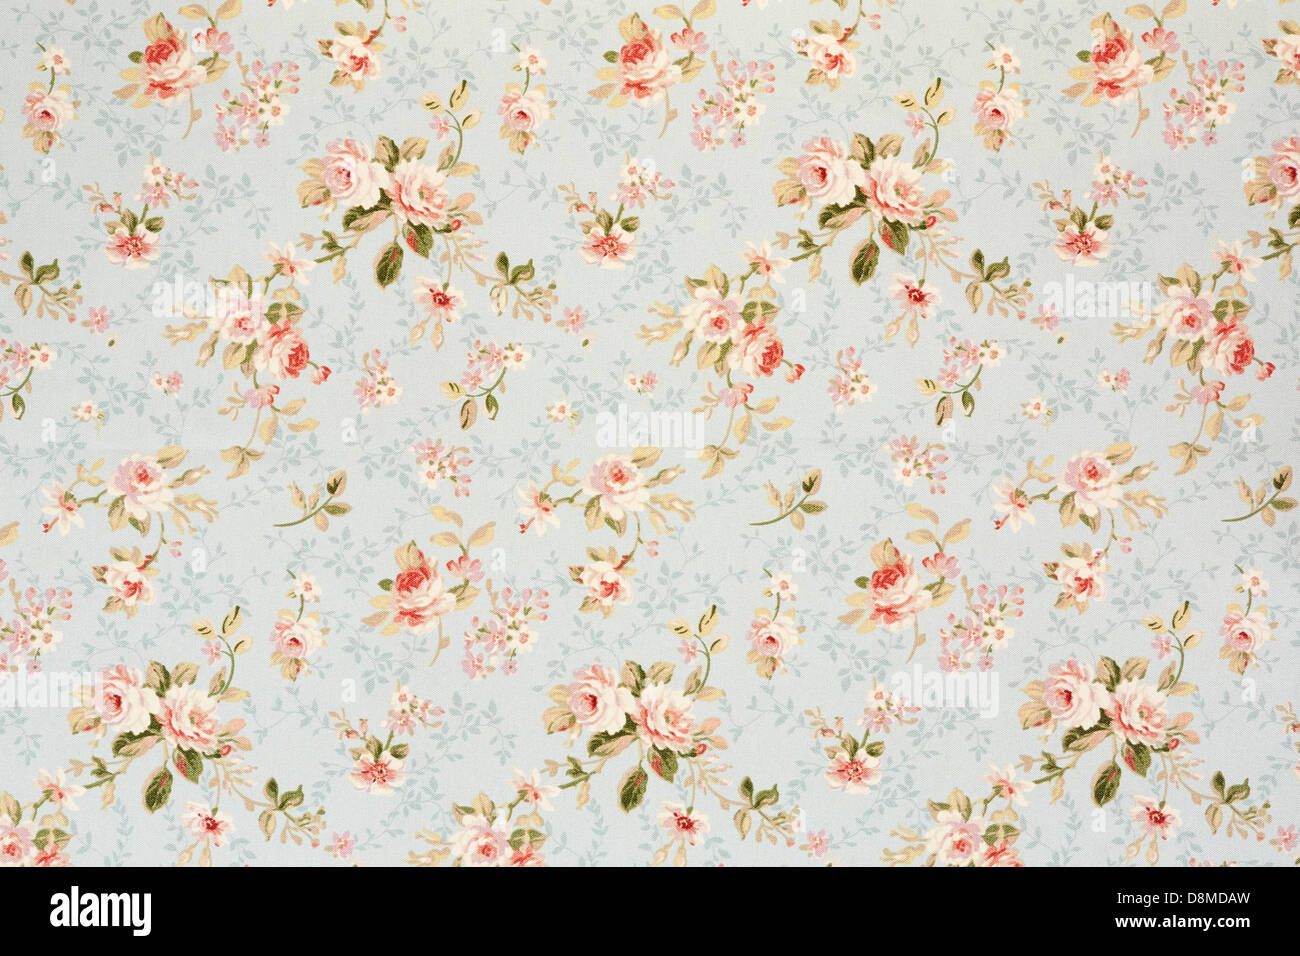 Rose floral tapestry, romantic texture background - Stock Image